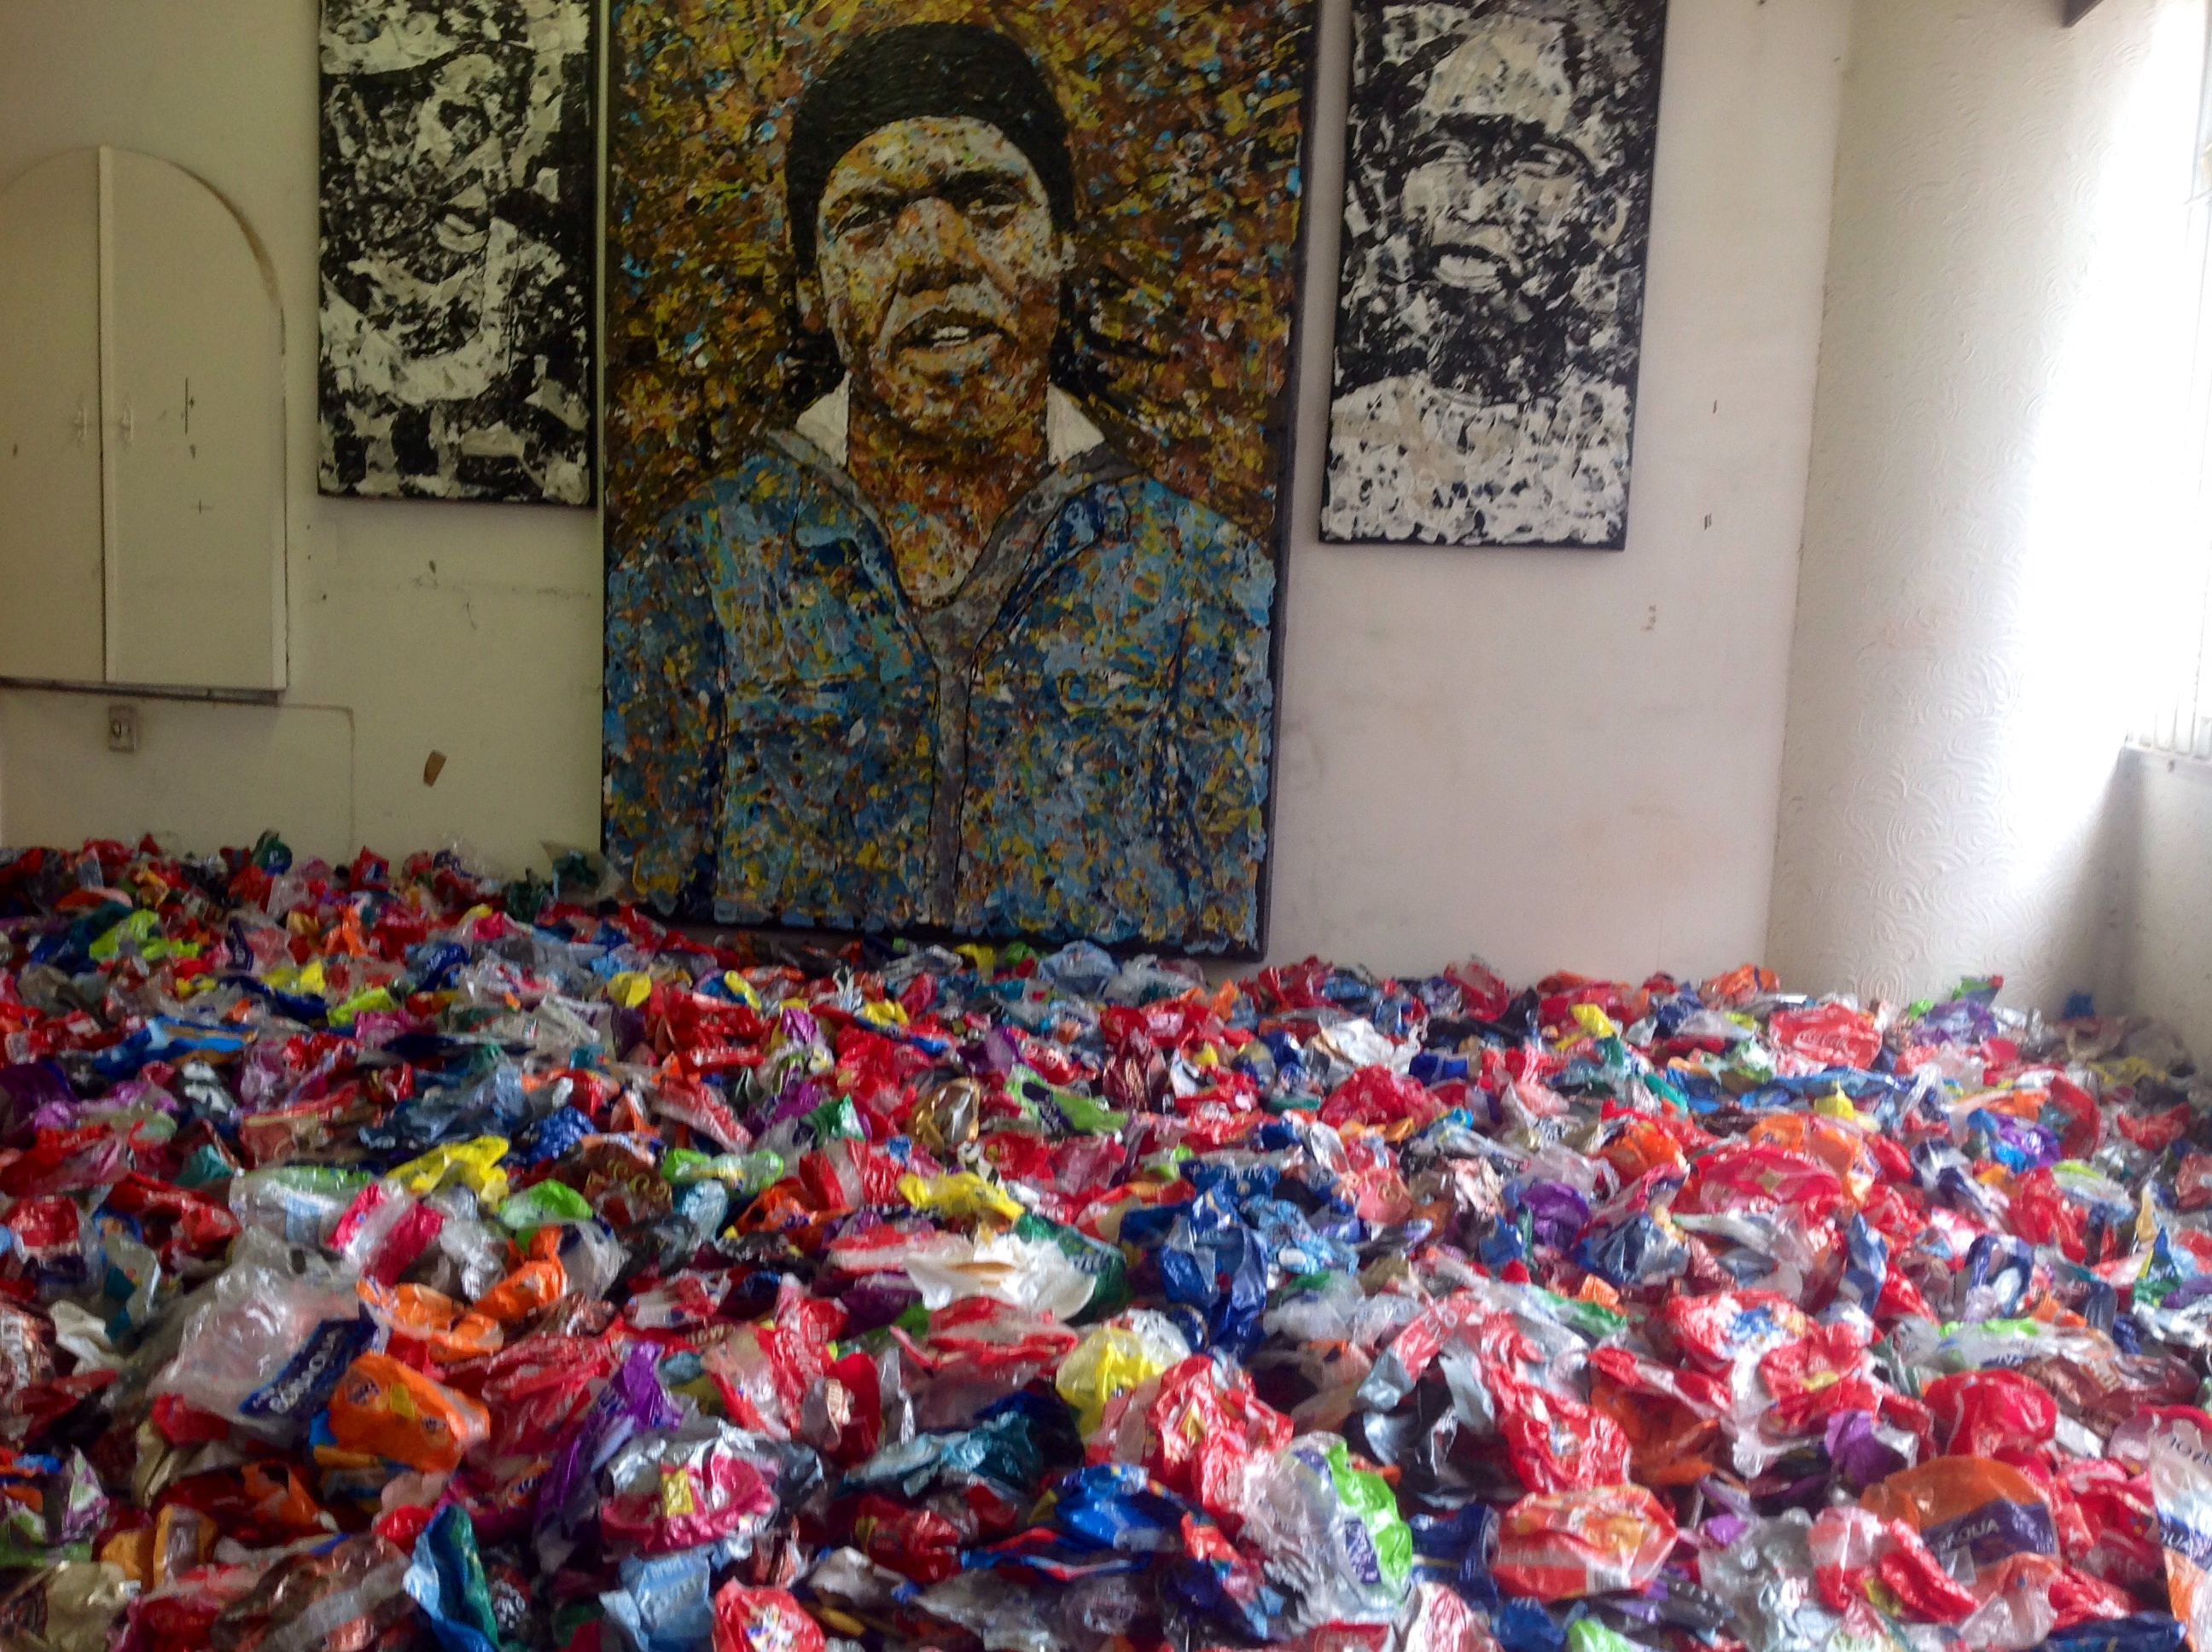 South African Artist Mbongeni Buthelezi Paints With Waste